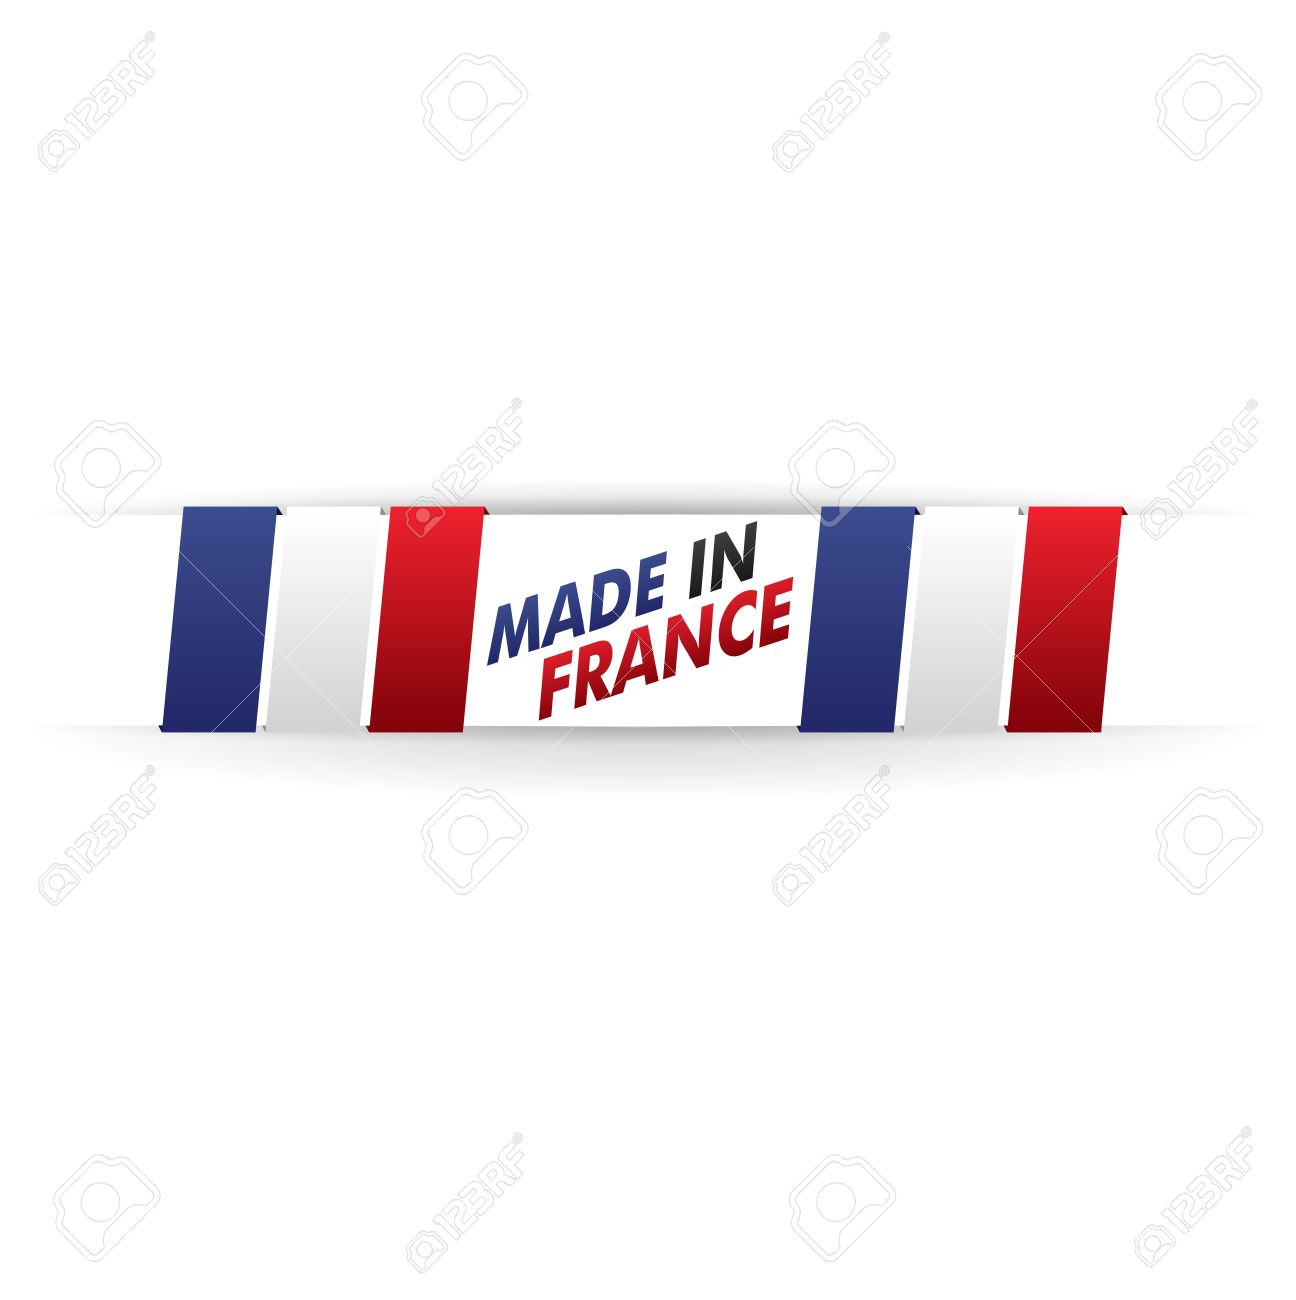 stamp, french flag    product, made in france Stock Vector - 17031451